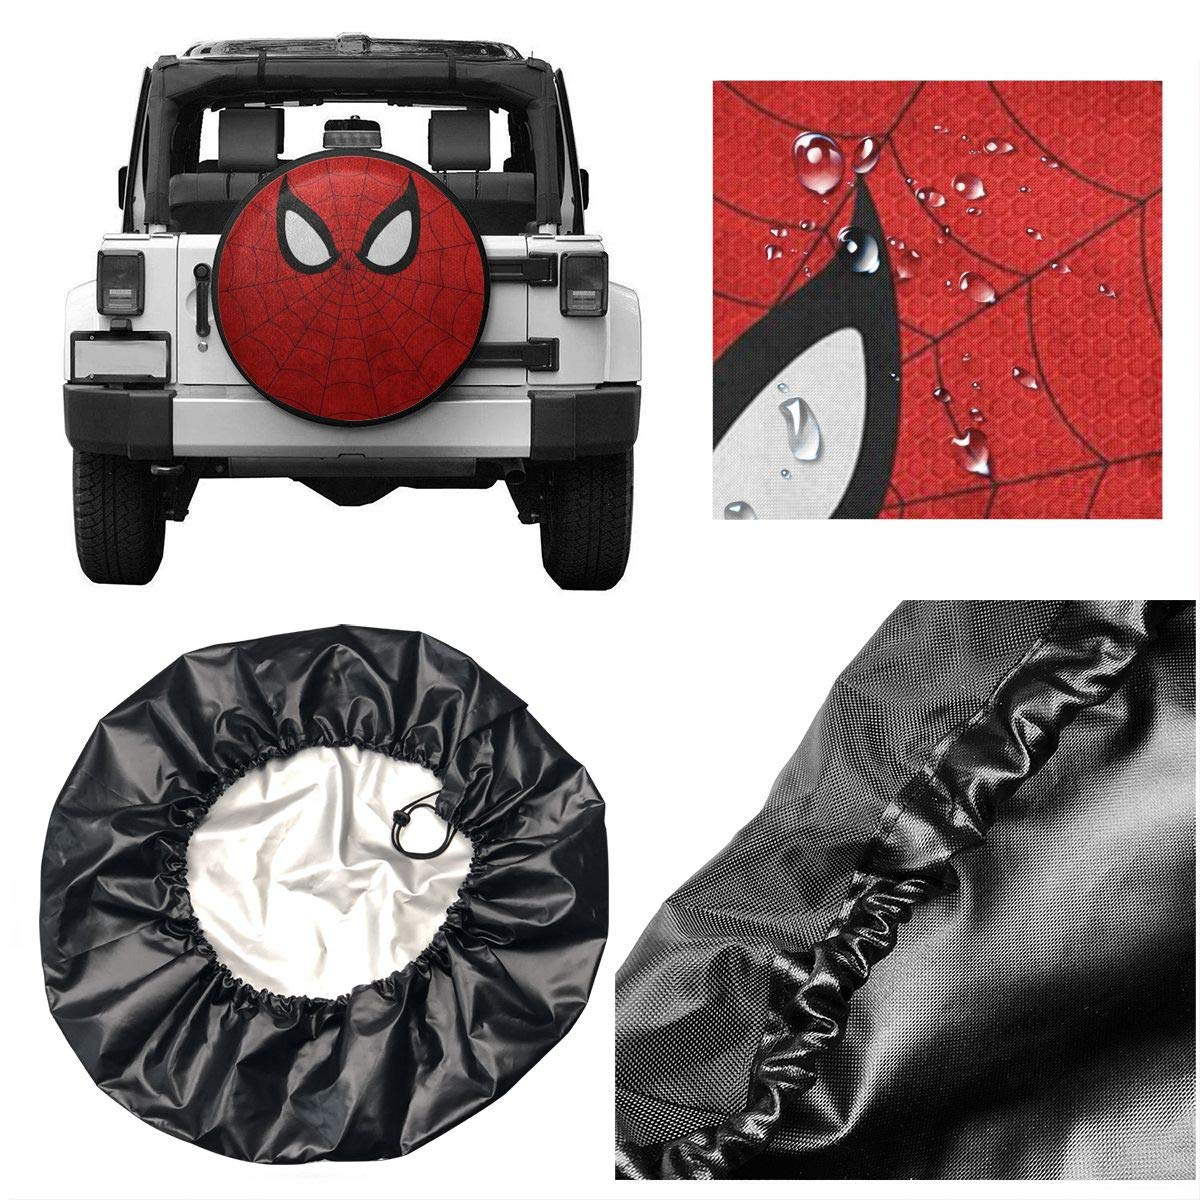 Lbbb1994 Fashion Stylish Cool Spiderman Classic Accessories Over Drive Standard RV Jeep Liberty Wrangler SUV Camper Travel Wheel Cover For14-17 Inch